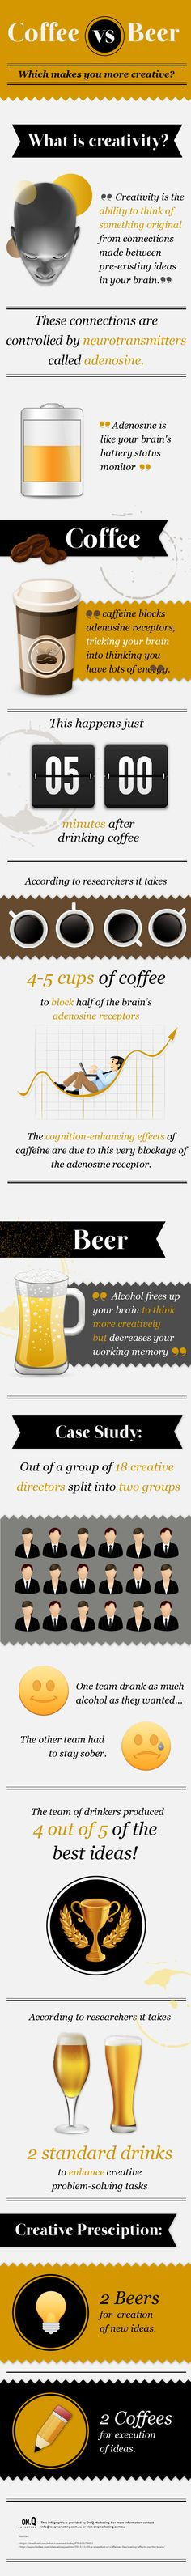 """Health Infographics - Beer and Coffee Infographic. Beer: Which Makes You More Creative? Beer"""" Infographic Proves Drinking Is Awesome. Beer Infographic, Creative Infographic, Health Infographics, Beer Brewing, Home Brewing, Coffee Facts, Creative Coffee, Web Design, Craft Quotes"""